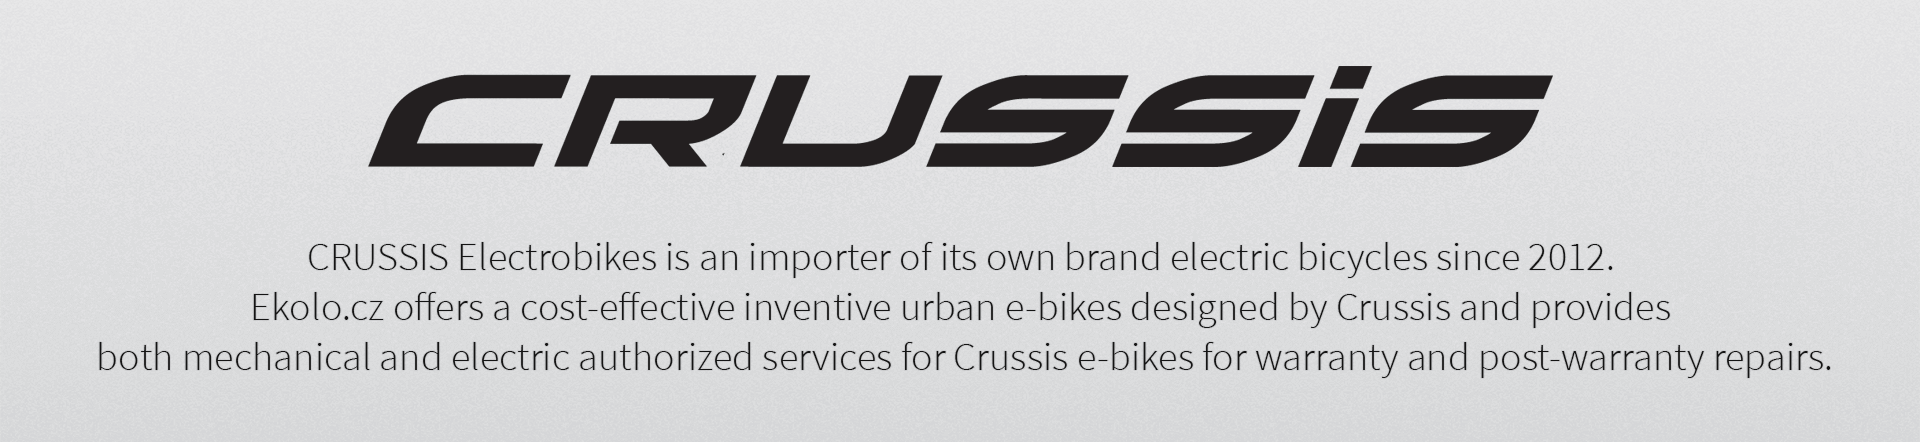 CRUSSIS Electrobikes is an importer of its own brand electric bicycles since 2012.  Ekolo.cz offers a cost-effective inventive urban e-bikes designed by Crussis and provides  both mechanical and electric authorized services for Crussis e-bikes for warranty and post-warranty repairs.